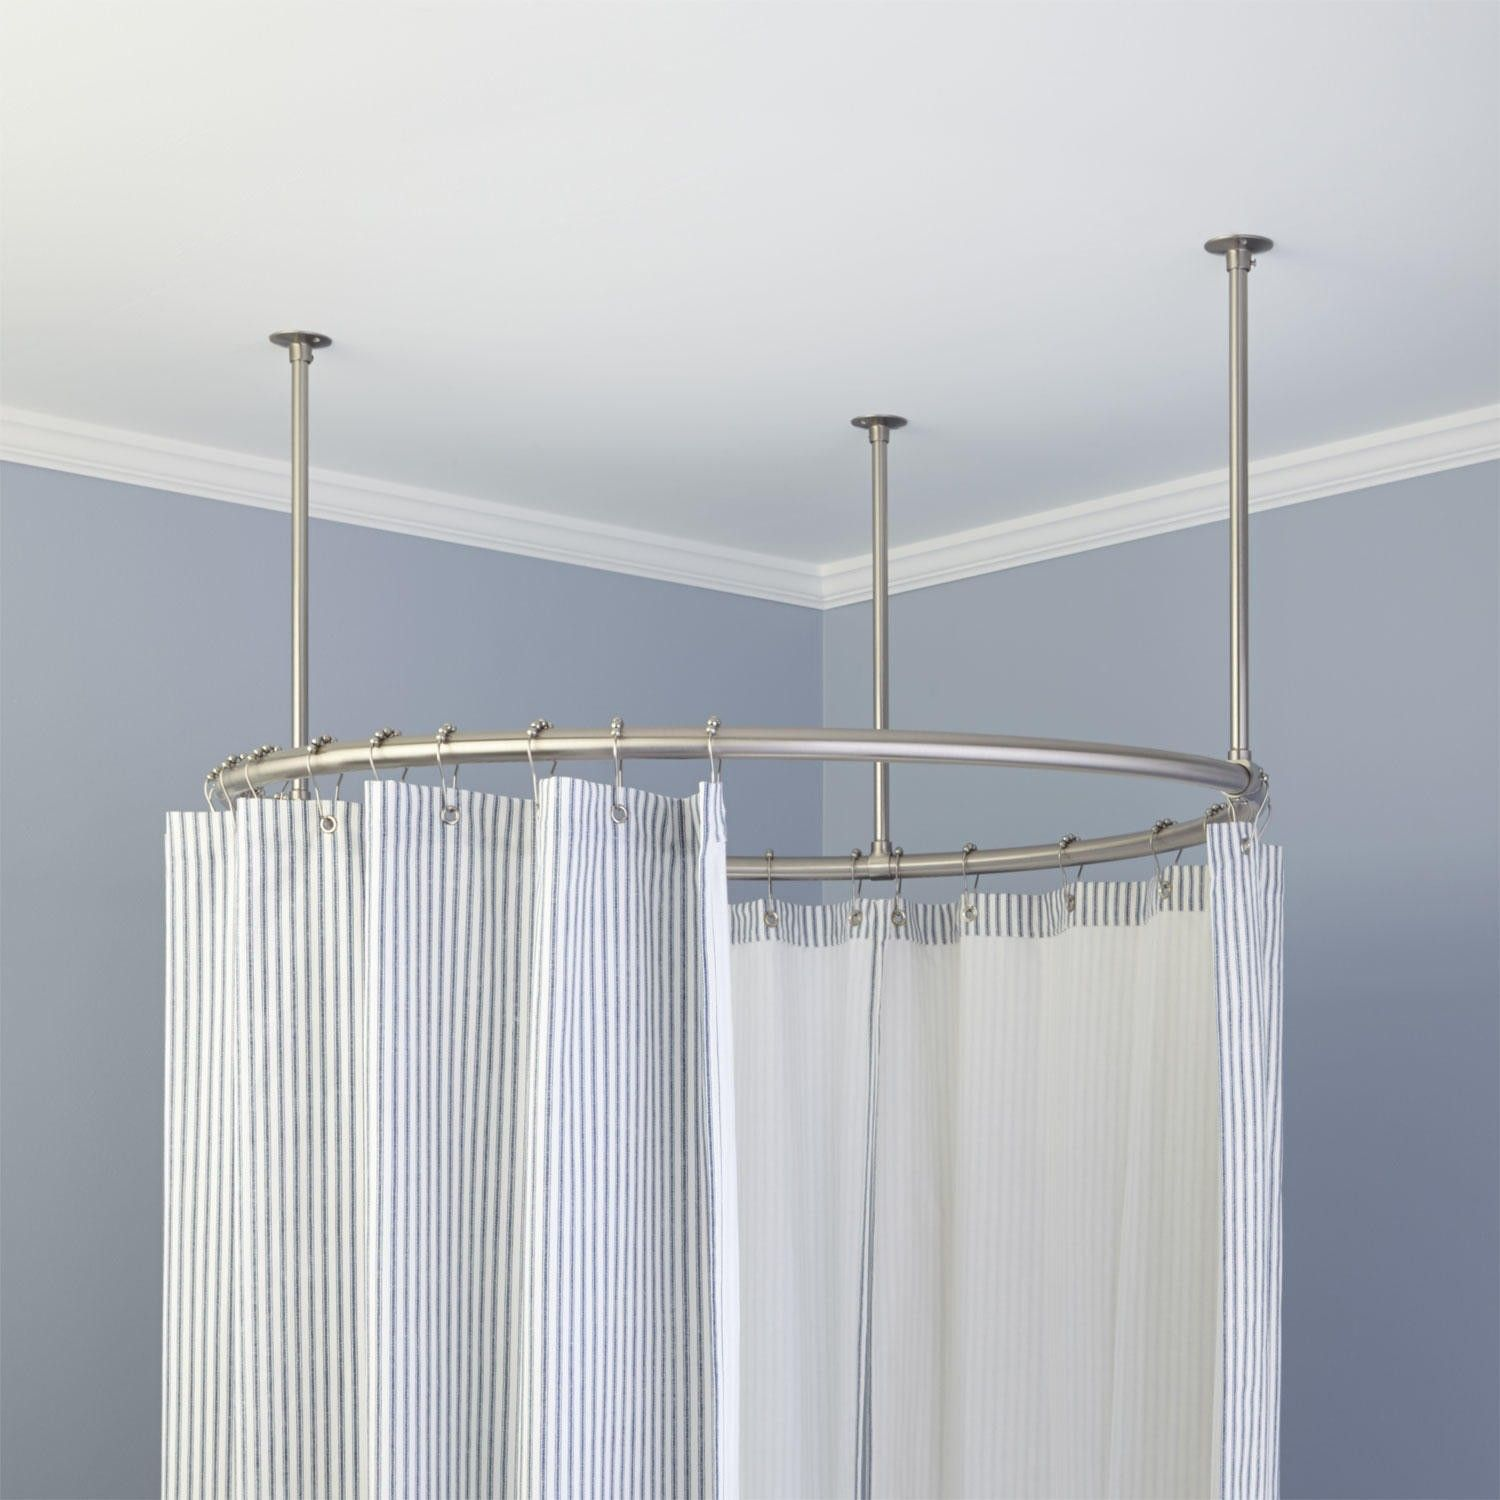 New 36 Curved Shower Rod Interior Cool Ideas Dan Behr